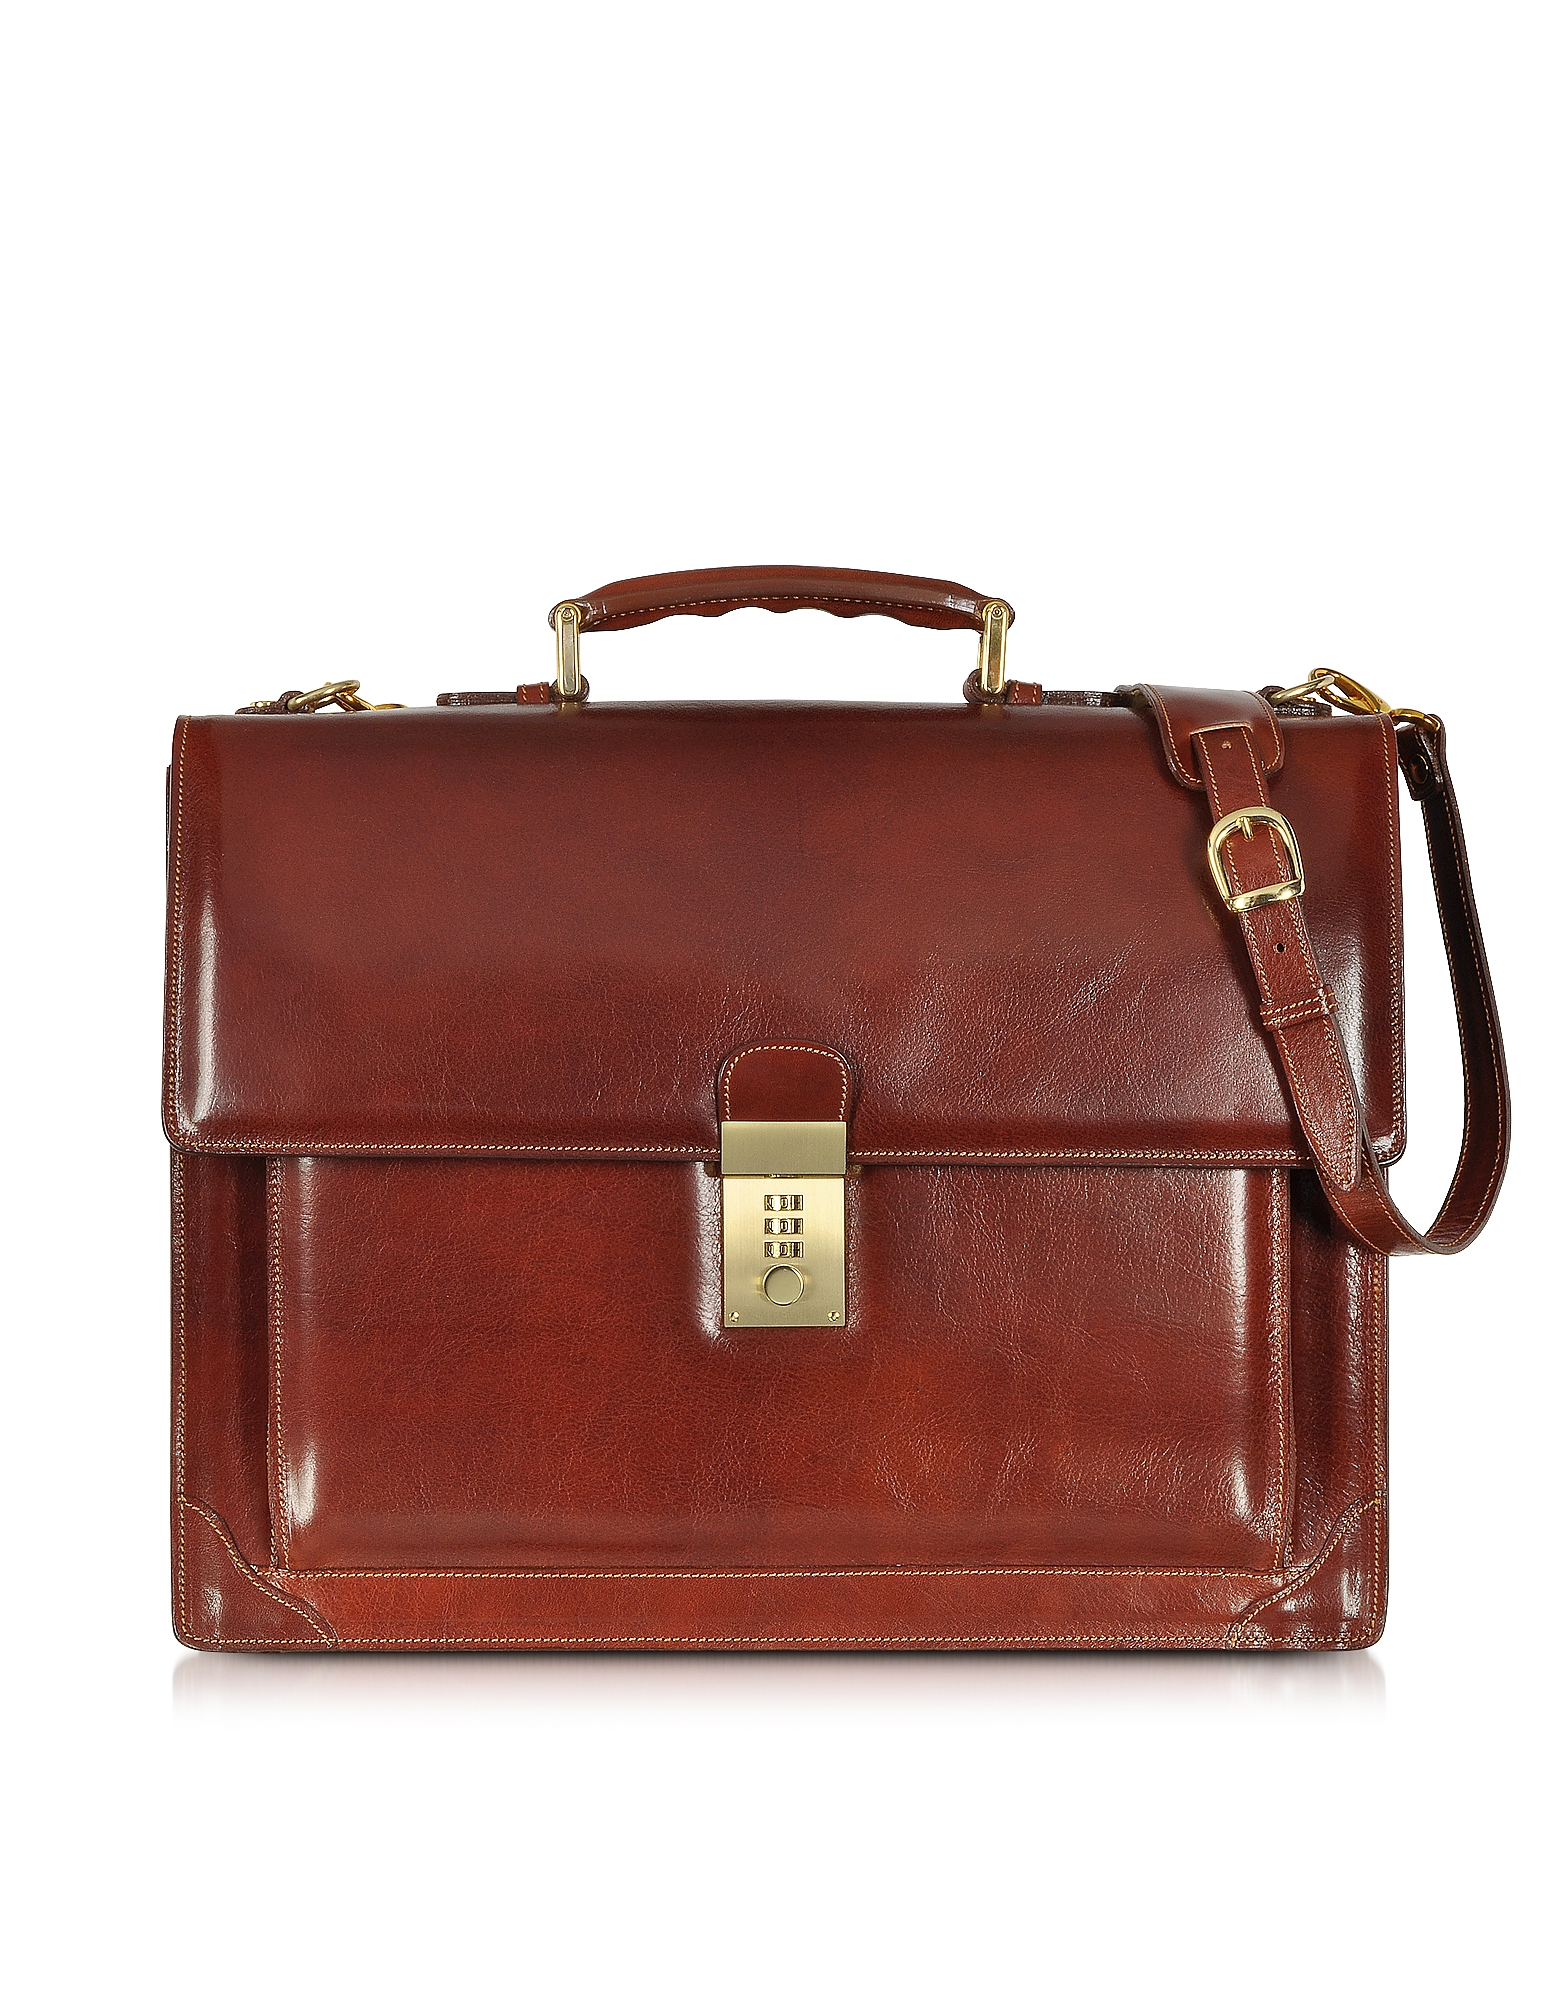 L.A.P.A. Briefcases, Cristoforo Colombo Collection Leather Briefcase